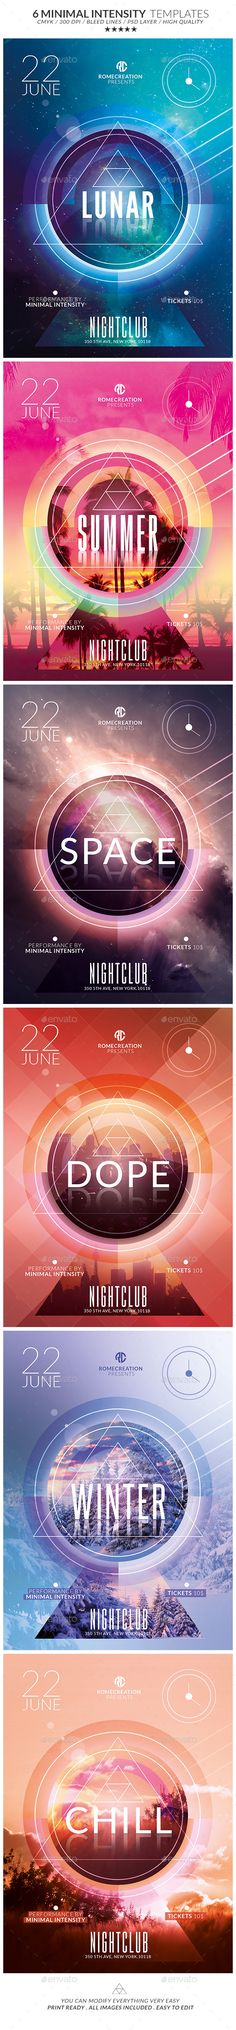 x6 Minimal Intensity / Flyer Psd Templates Pack / Print Ready !!! - Available on…